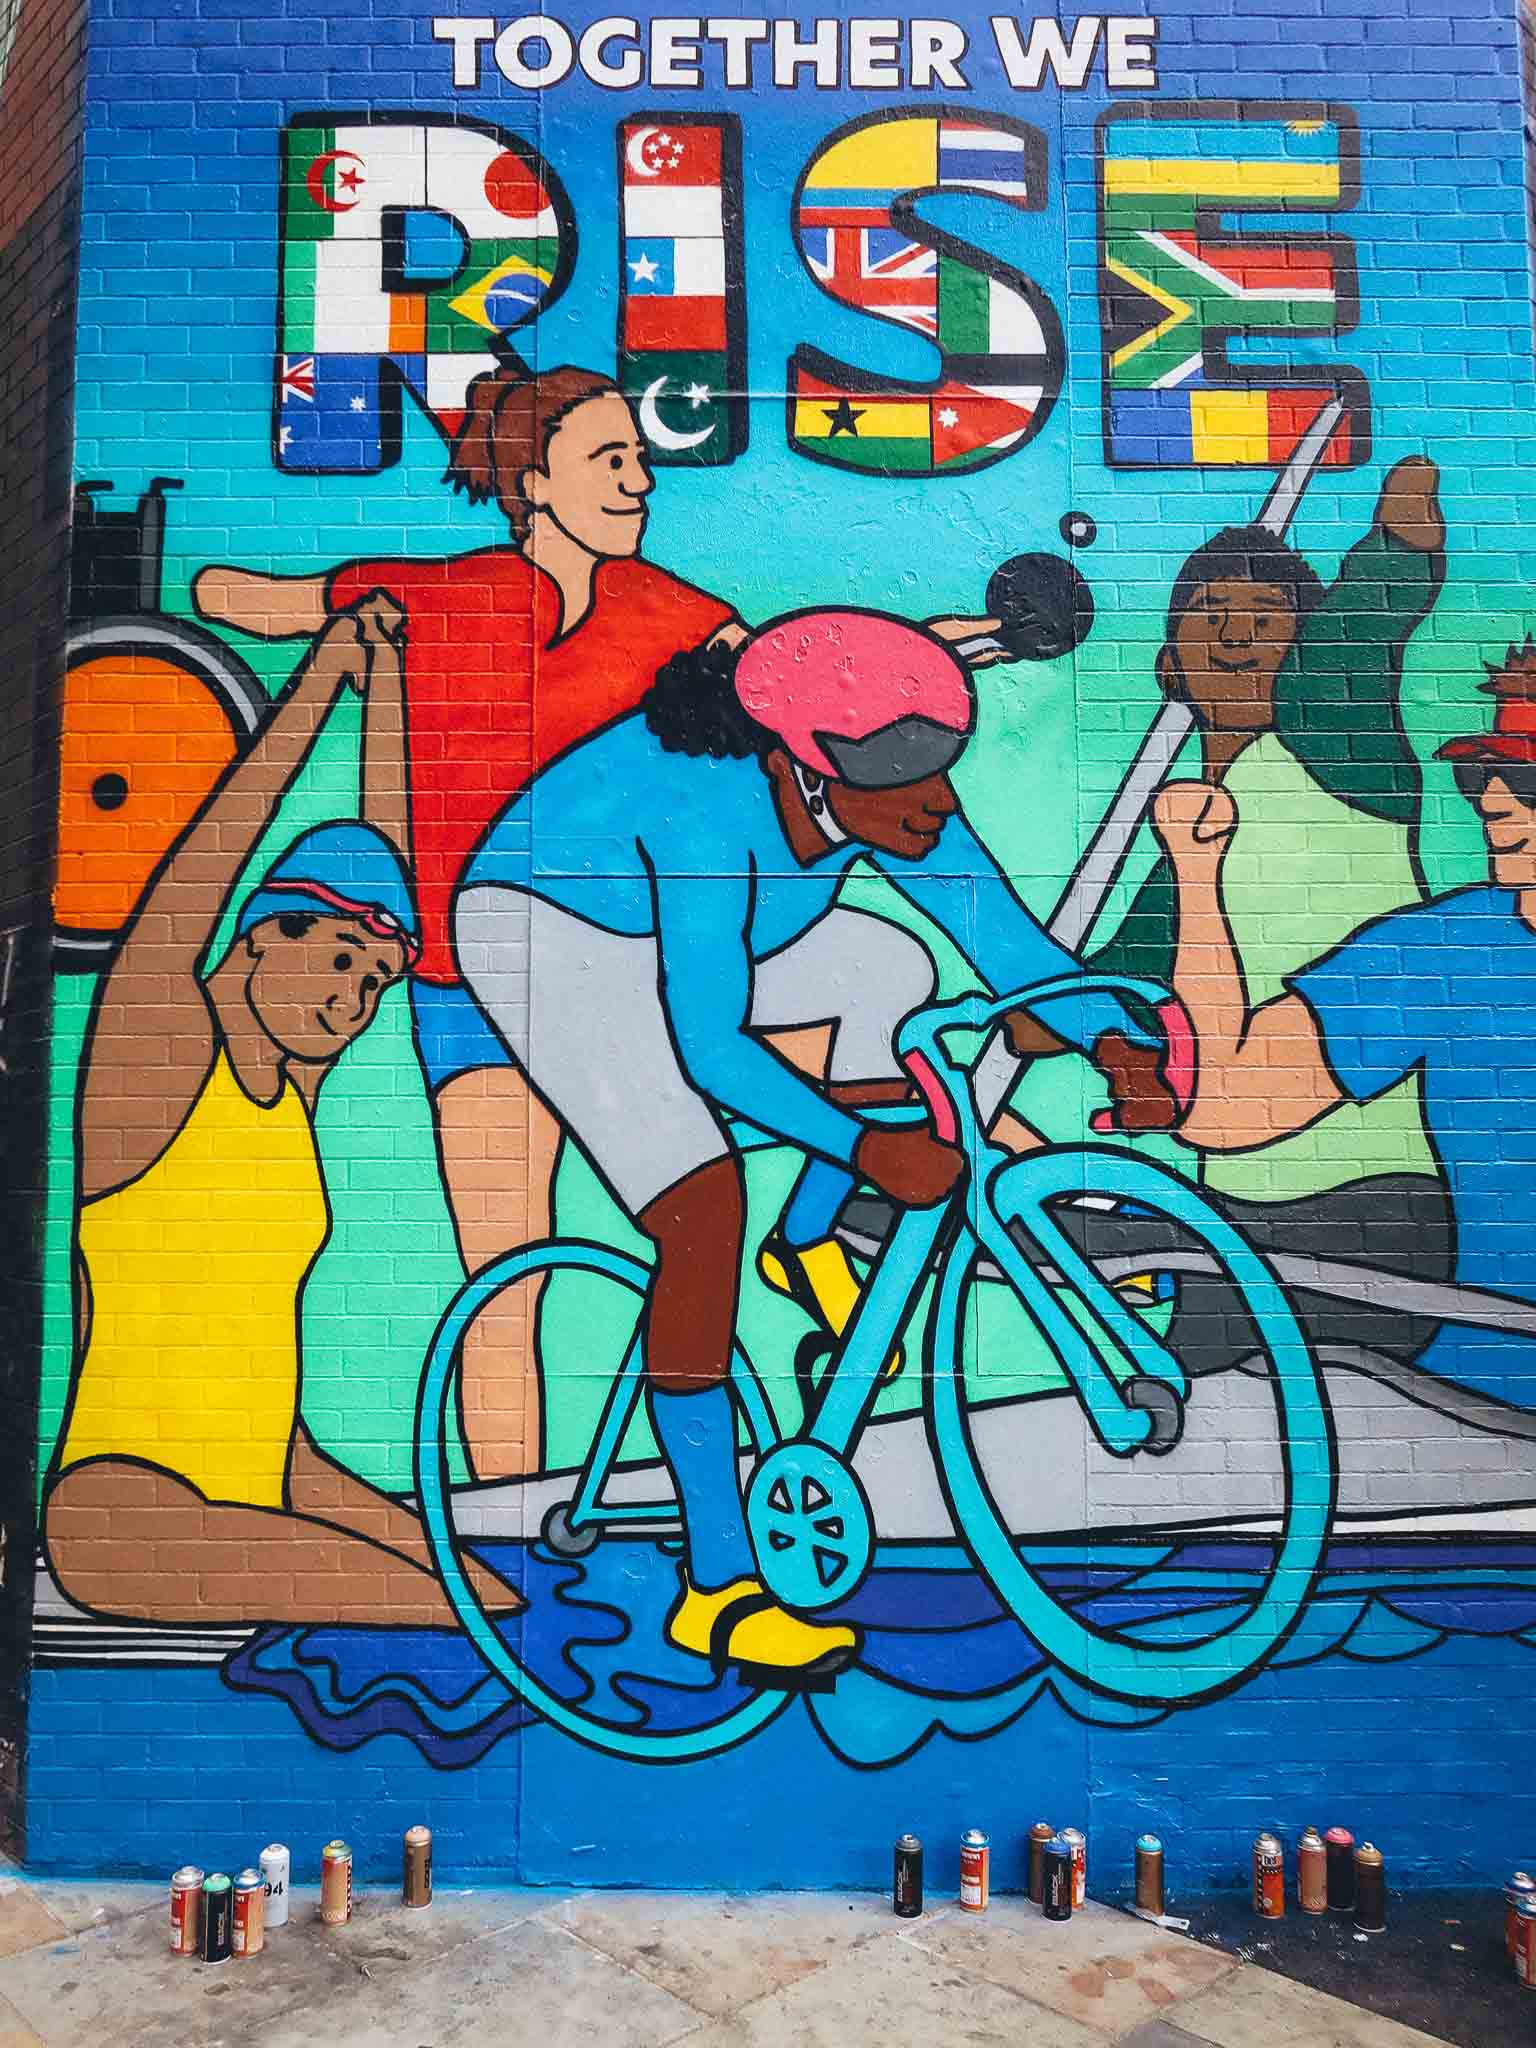 A photograph of Jess's Citibank Paralympics Mural painted on a corner in Shoreditch in London by art collective Graffiti Life. The mural is in a colourful bold graphic style and depicts Paralympian's taking part in their various sports such as canoeing, cycling, table tennis and swimming. At the top of the mural there is text which reads 'Together We Rise'. The capitalised font of the word 'Rise' contains flags of the countries from all over the world including Ireland, Australia, Japan, Ecuador and South Africa.